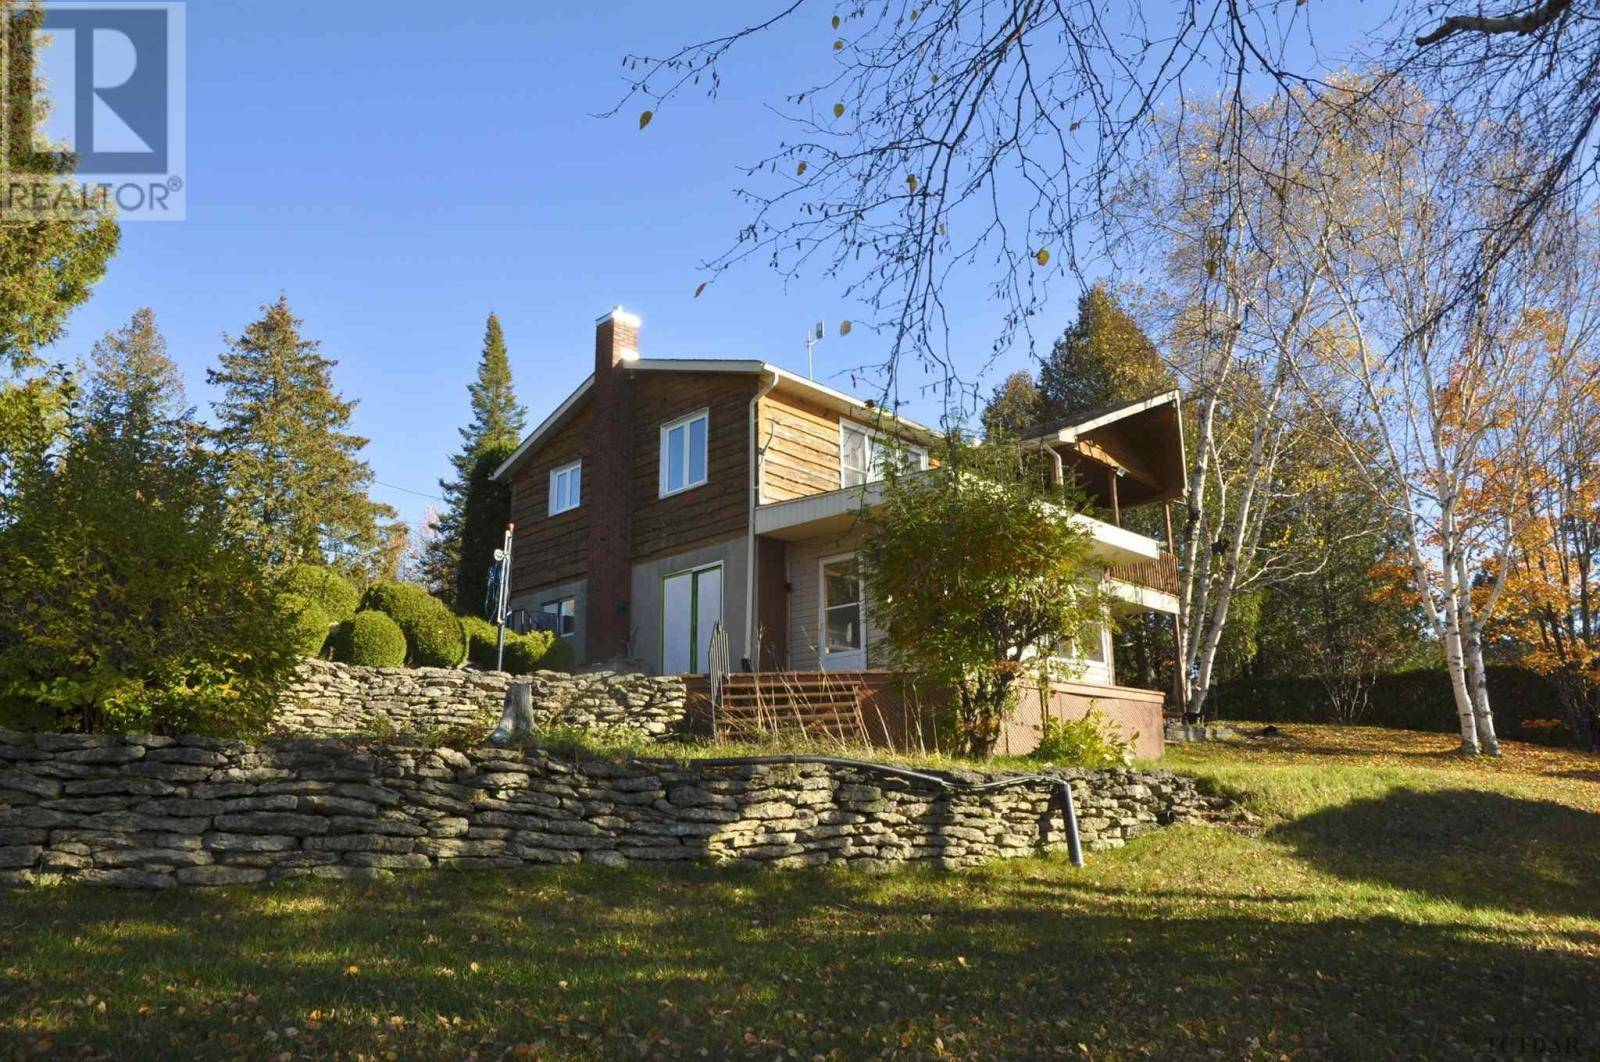 House for sale at 81880 Bay Rd Coleman Twp Ontario - MLS: TM192496